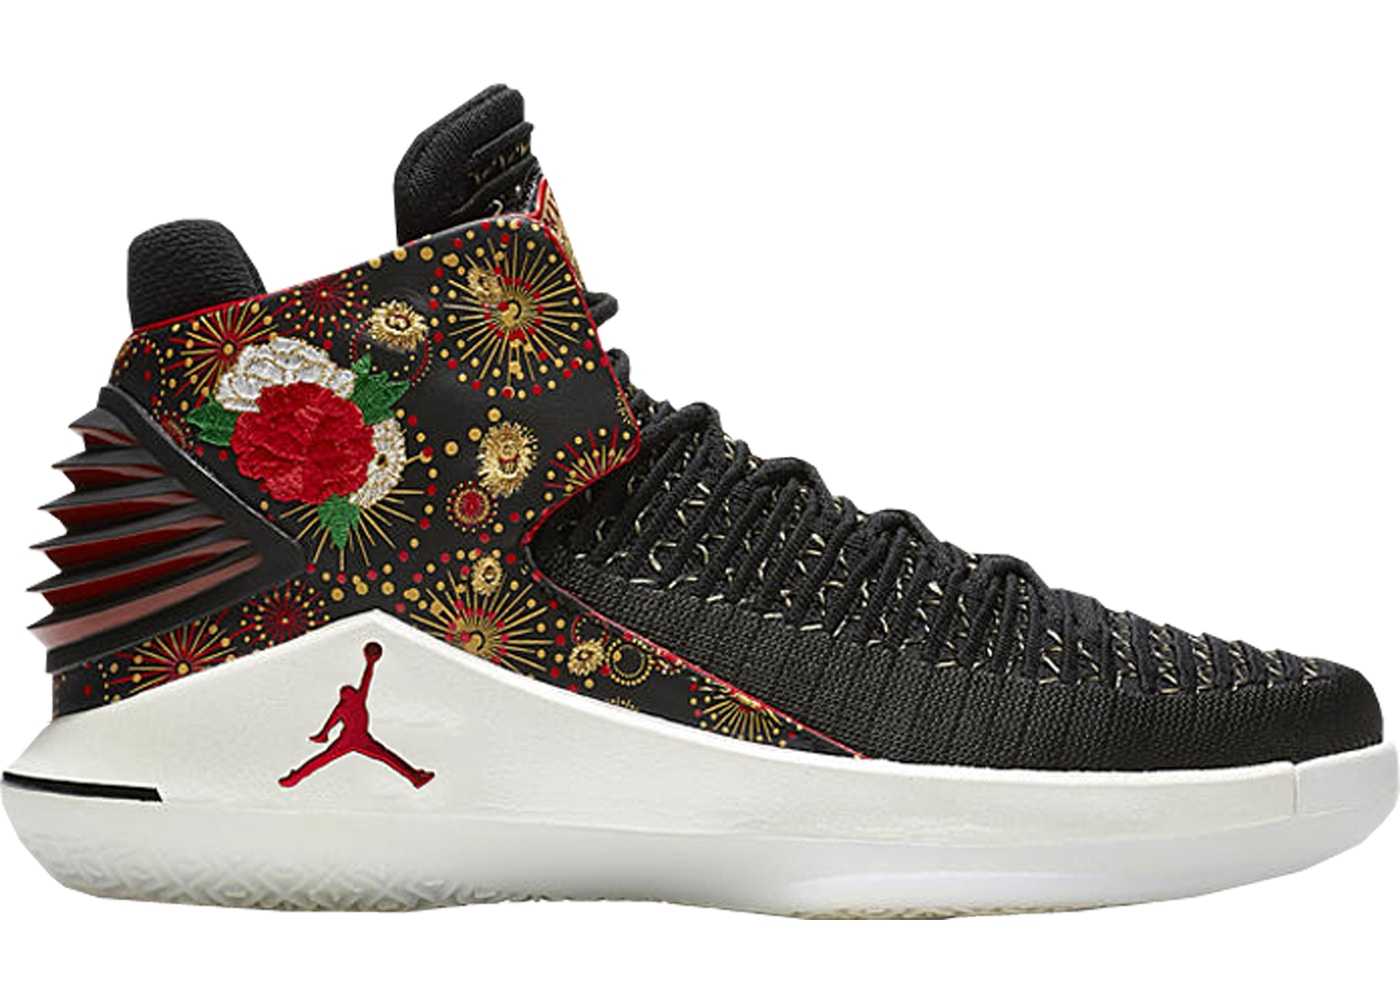 separation shoes b5869 bee83 Jordan XXXII Chinese New Year 2018 (China Release)